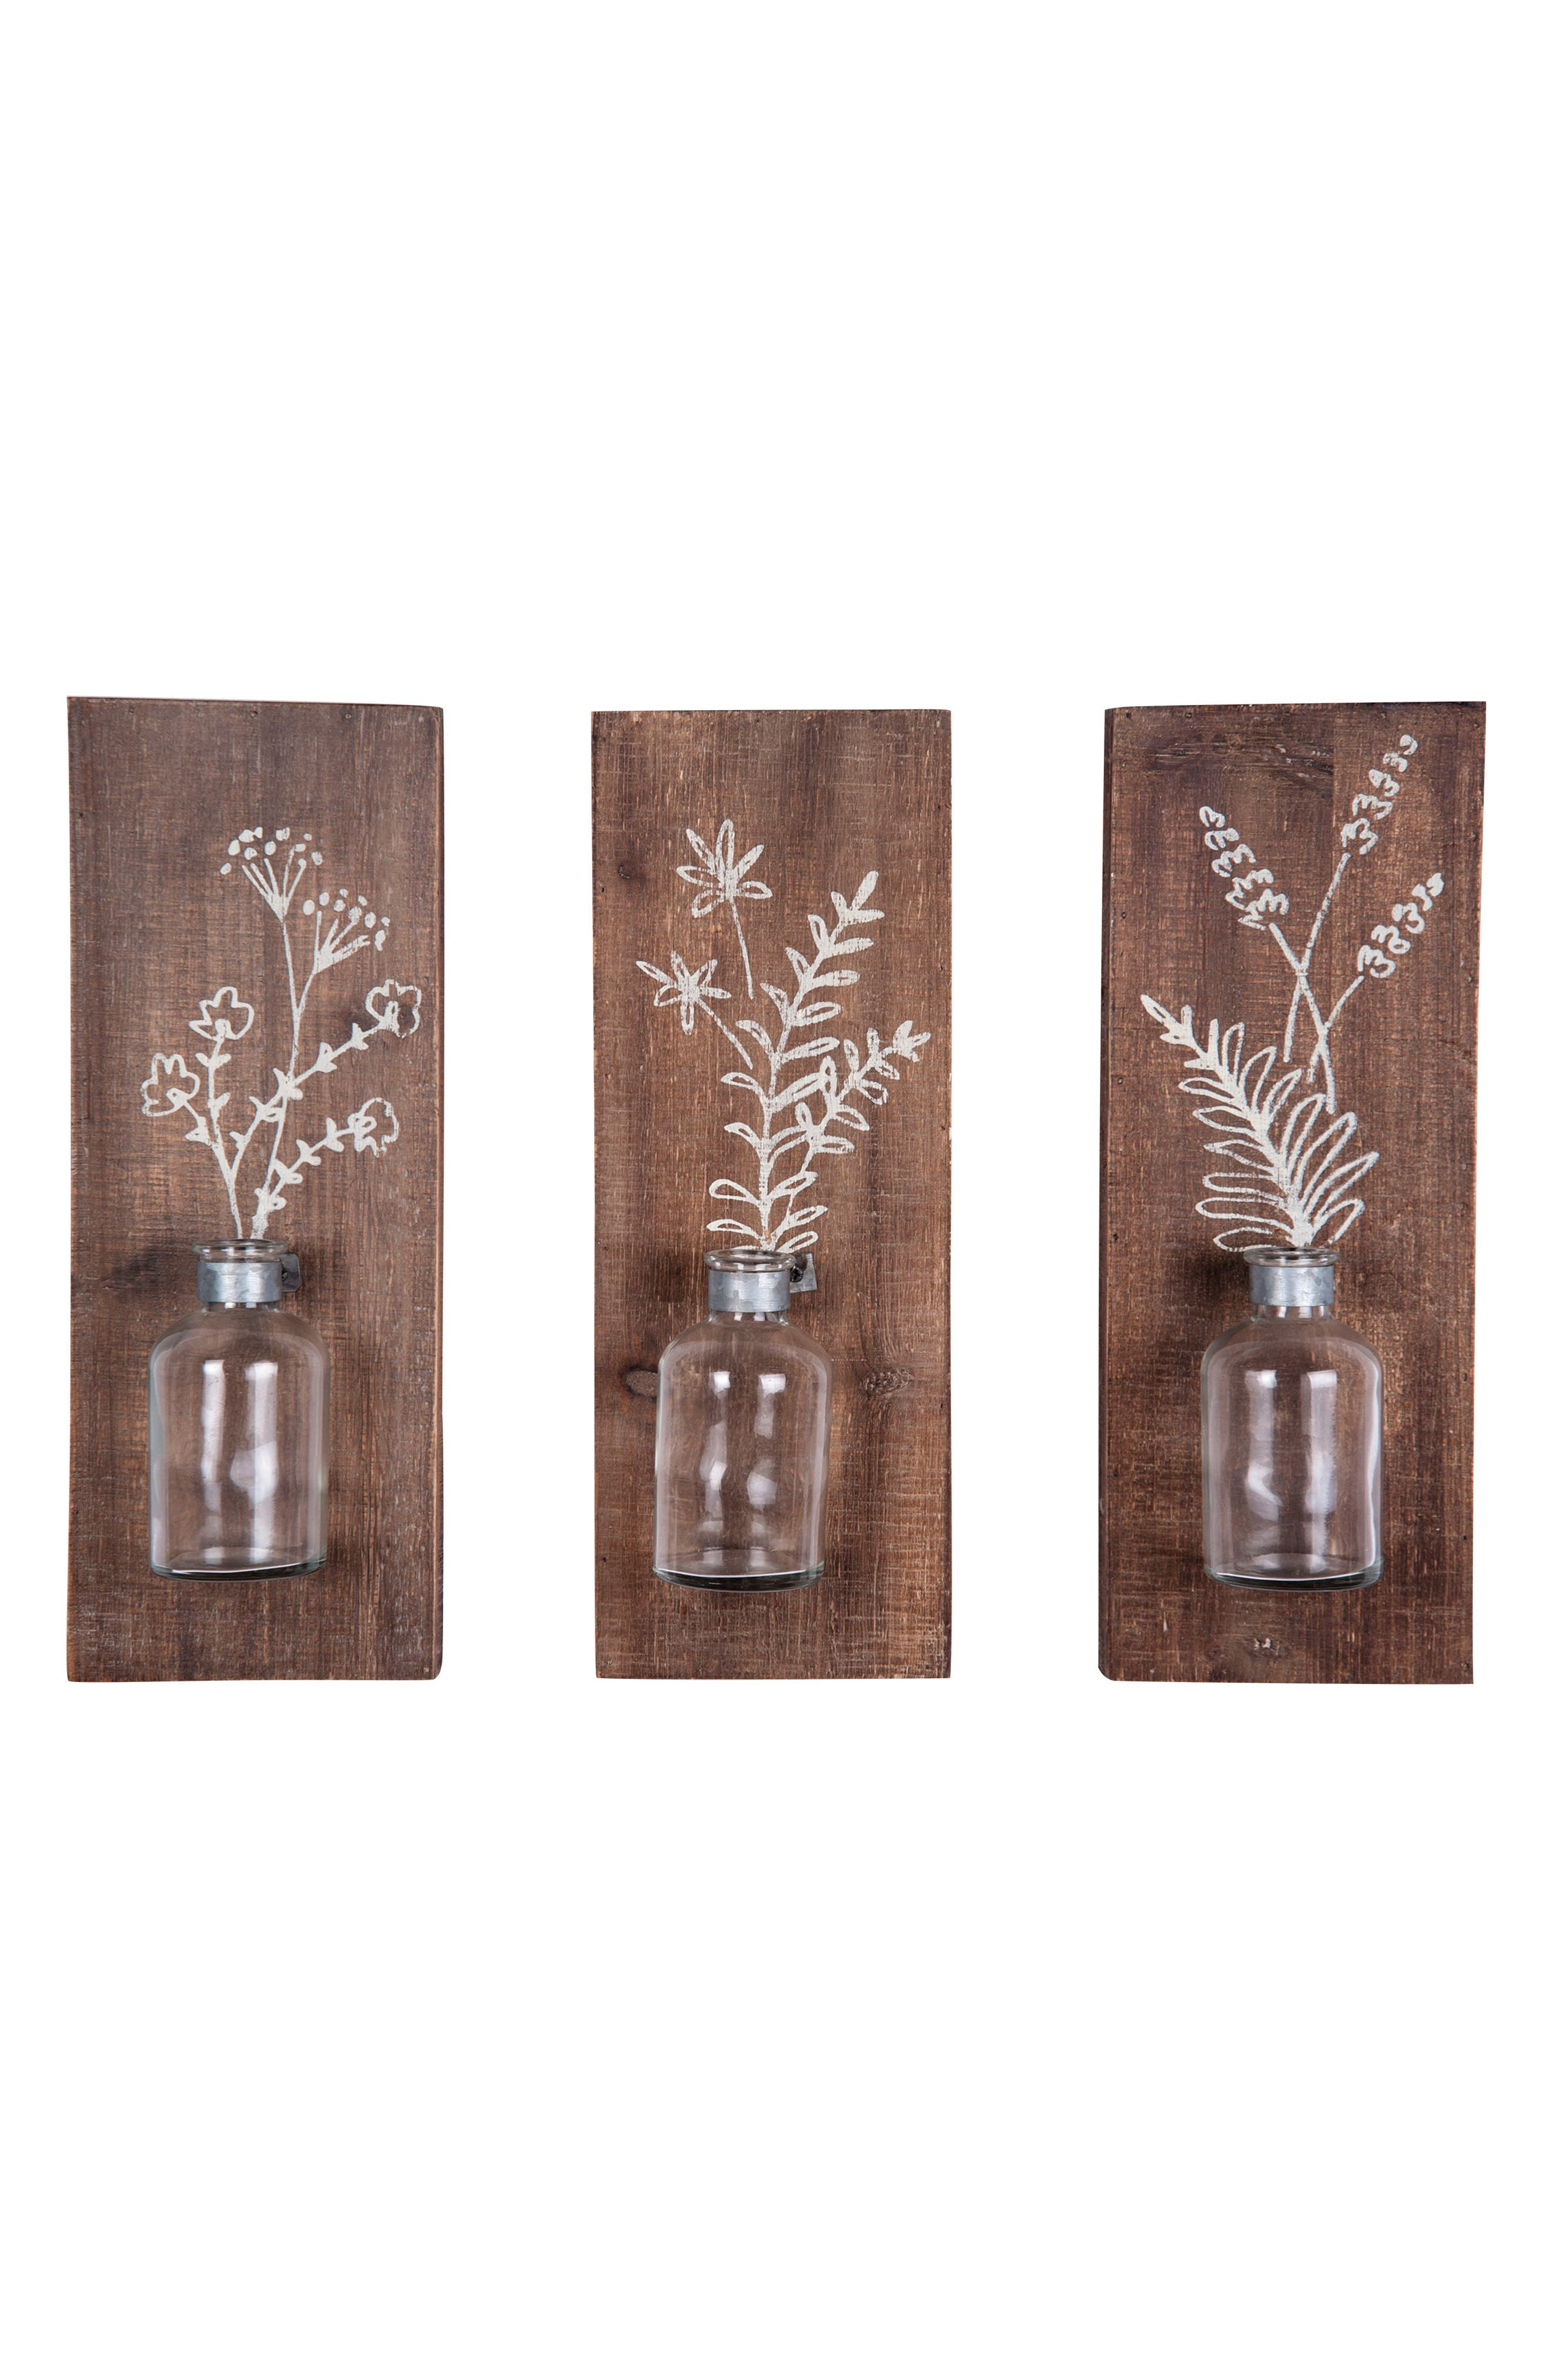 Fern Set of 3 Wall Vases,                         Main,                         color, 200